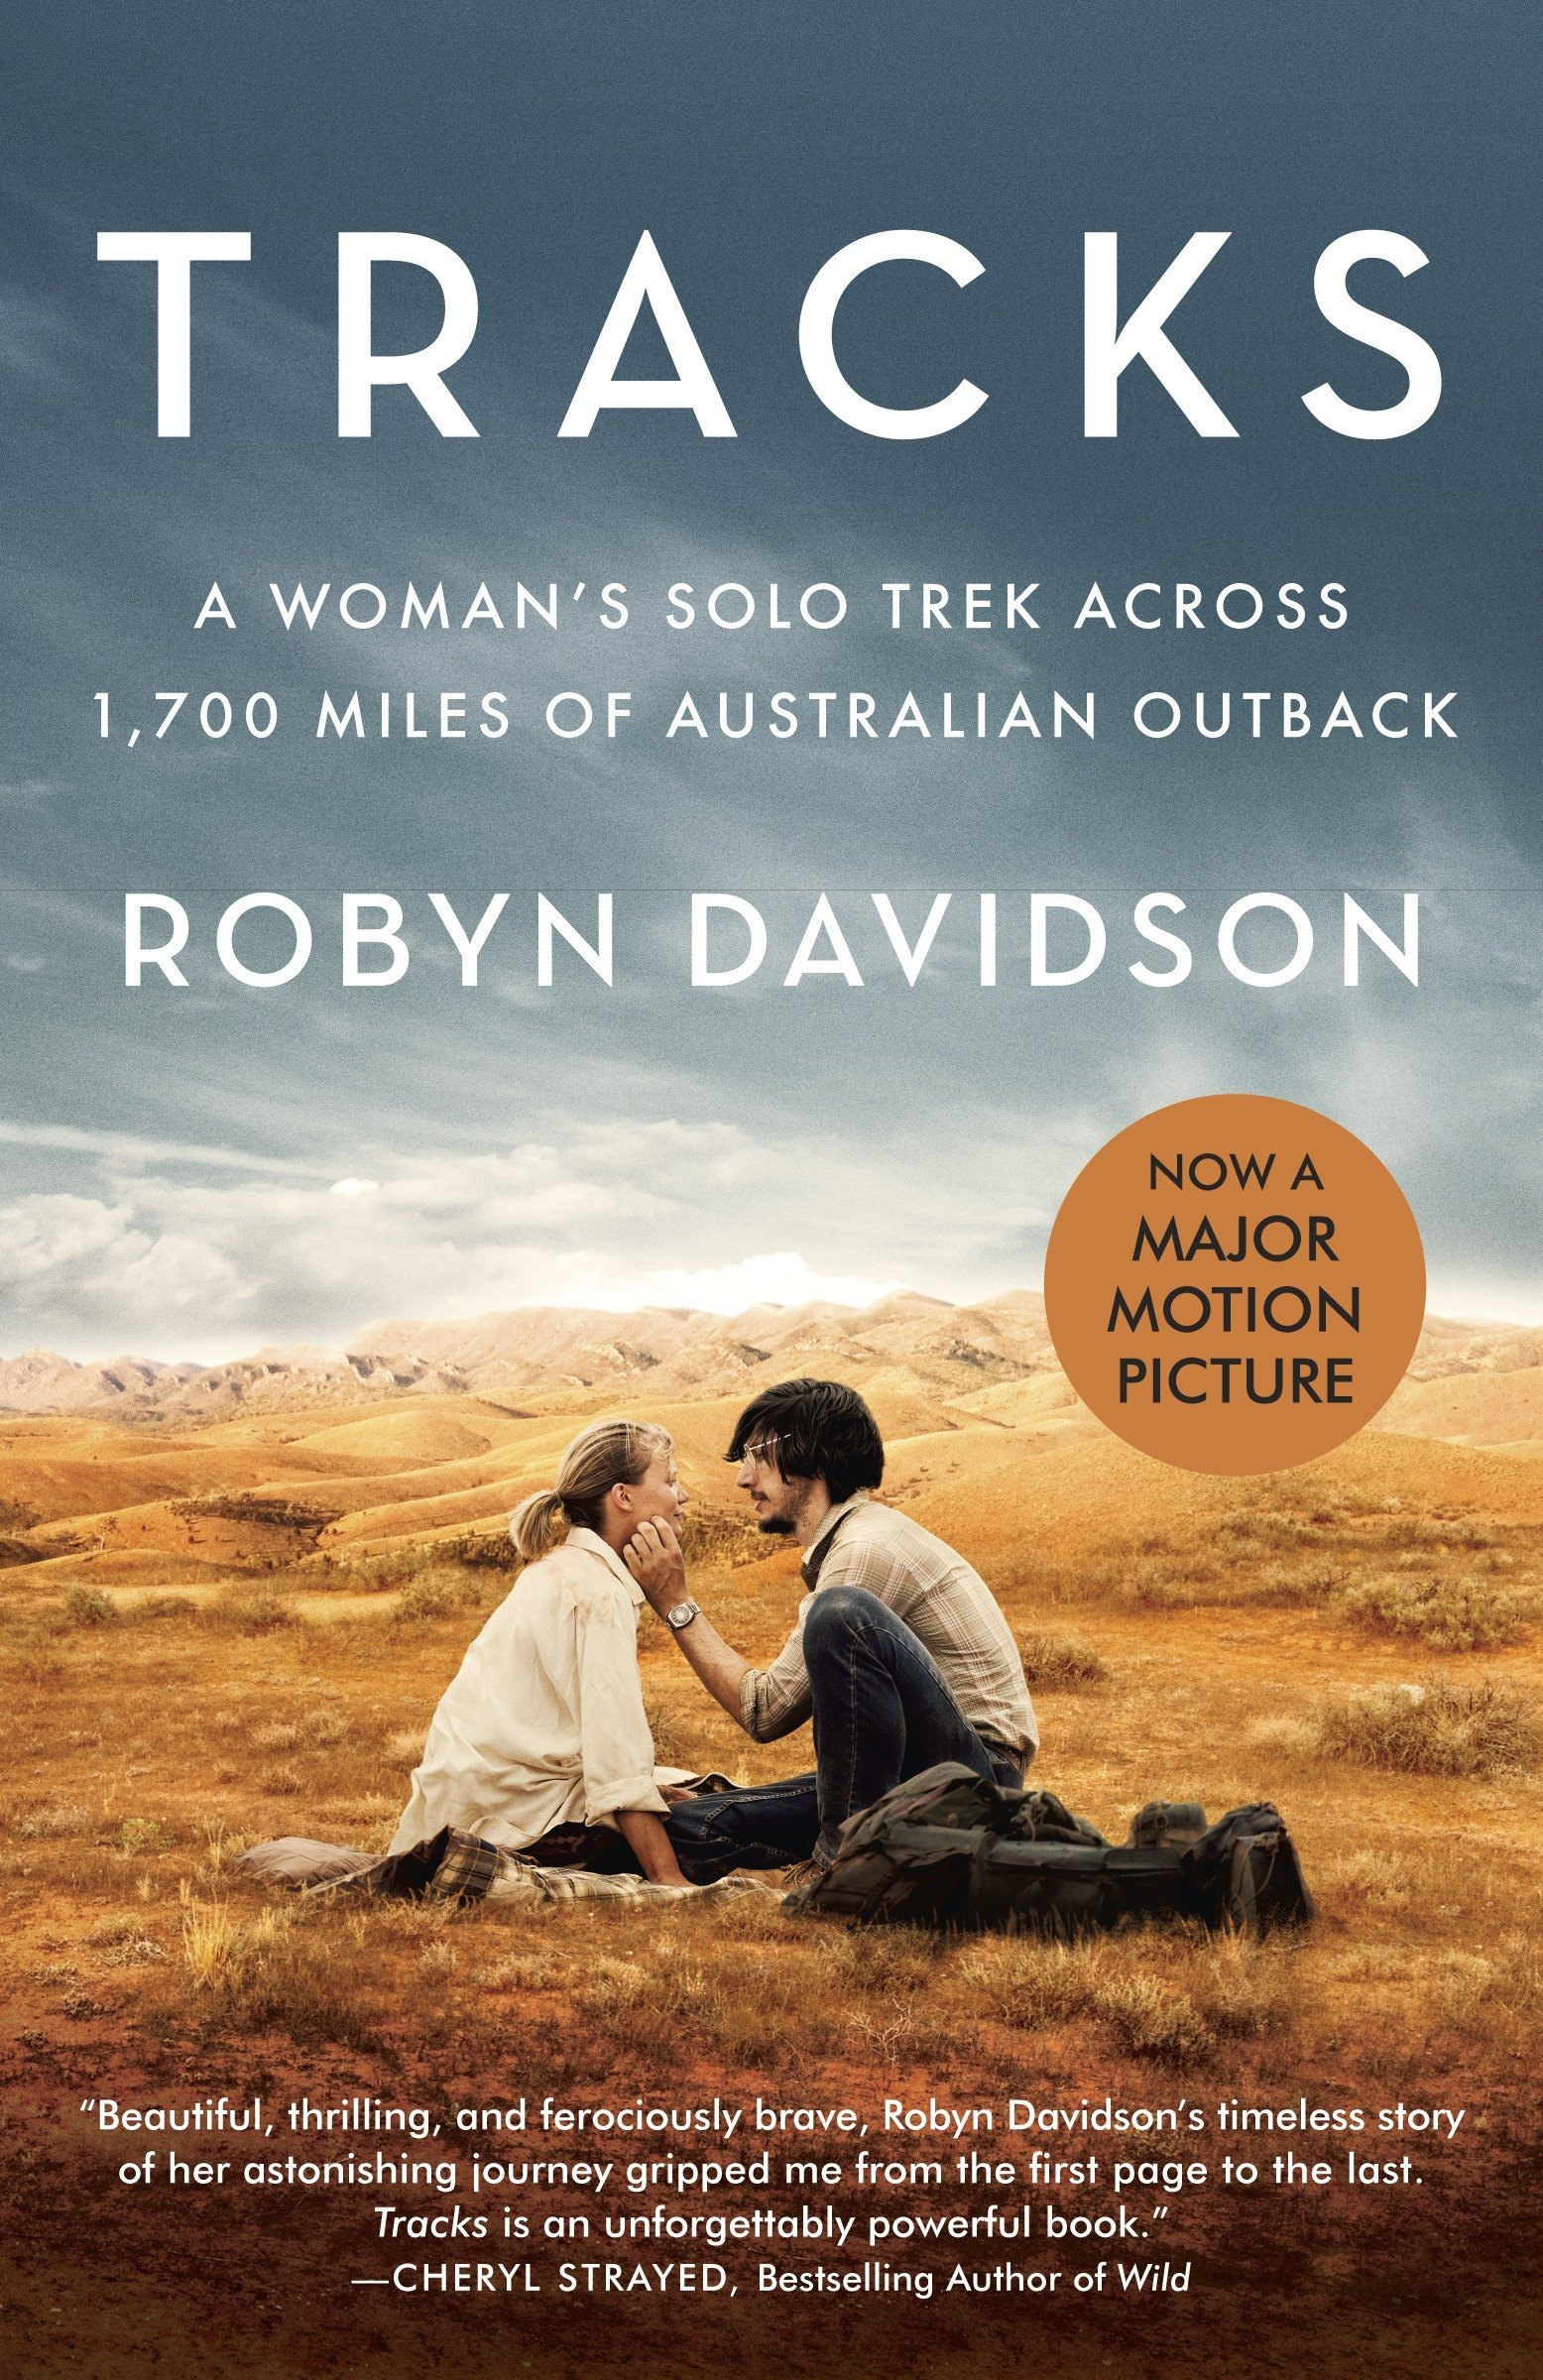 Download Tracks (Movie Tie-in Edition): A Woman's Solo Trek Across 1700 Miles of Australian Outback (Vintage Departures) PDF